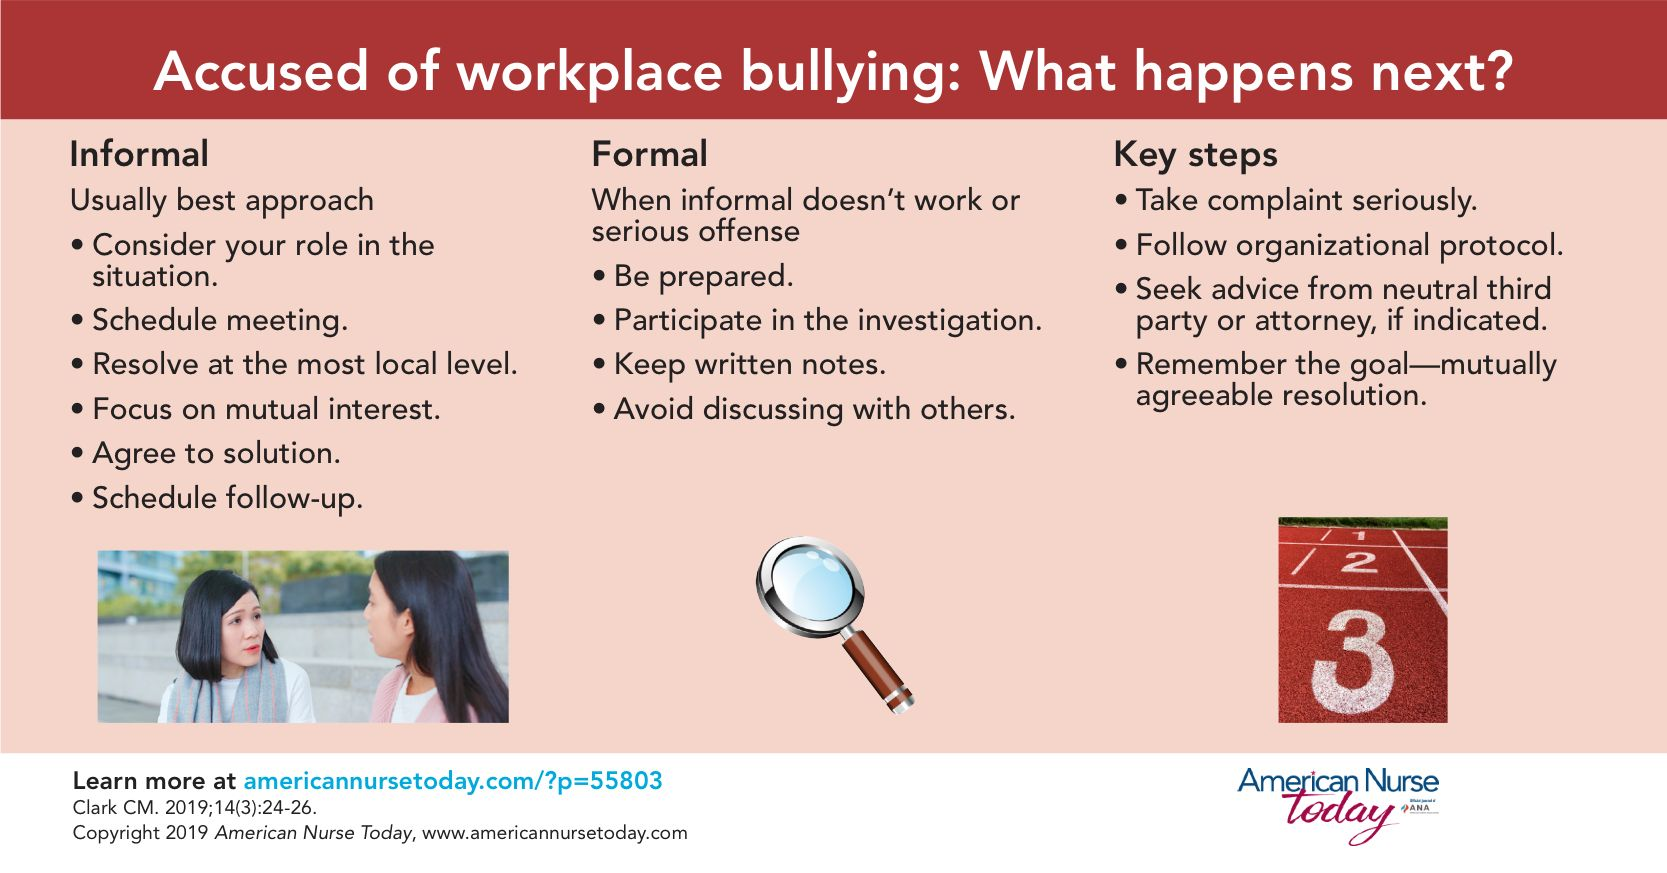 Accused of workplace bullying: What happens next? - American Nurse Today